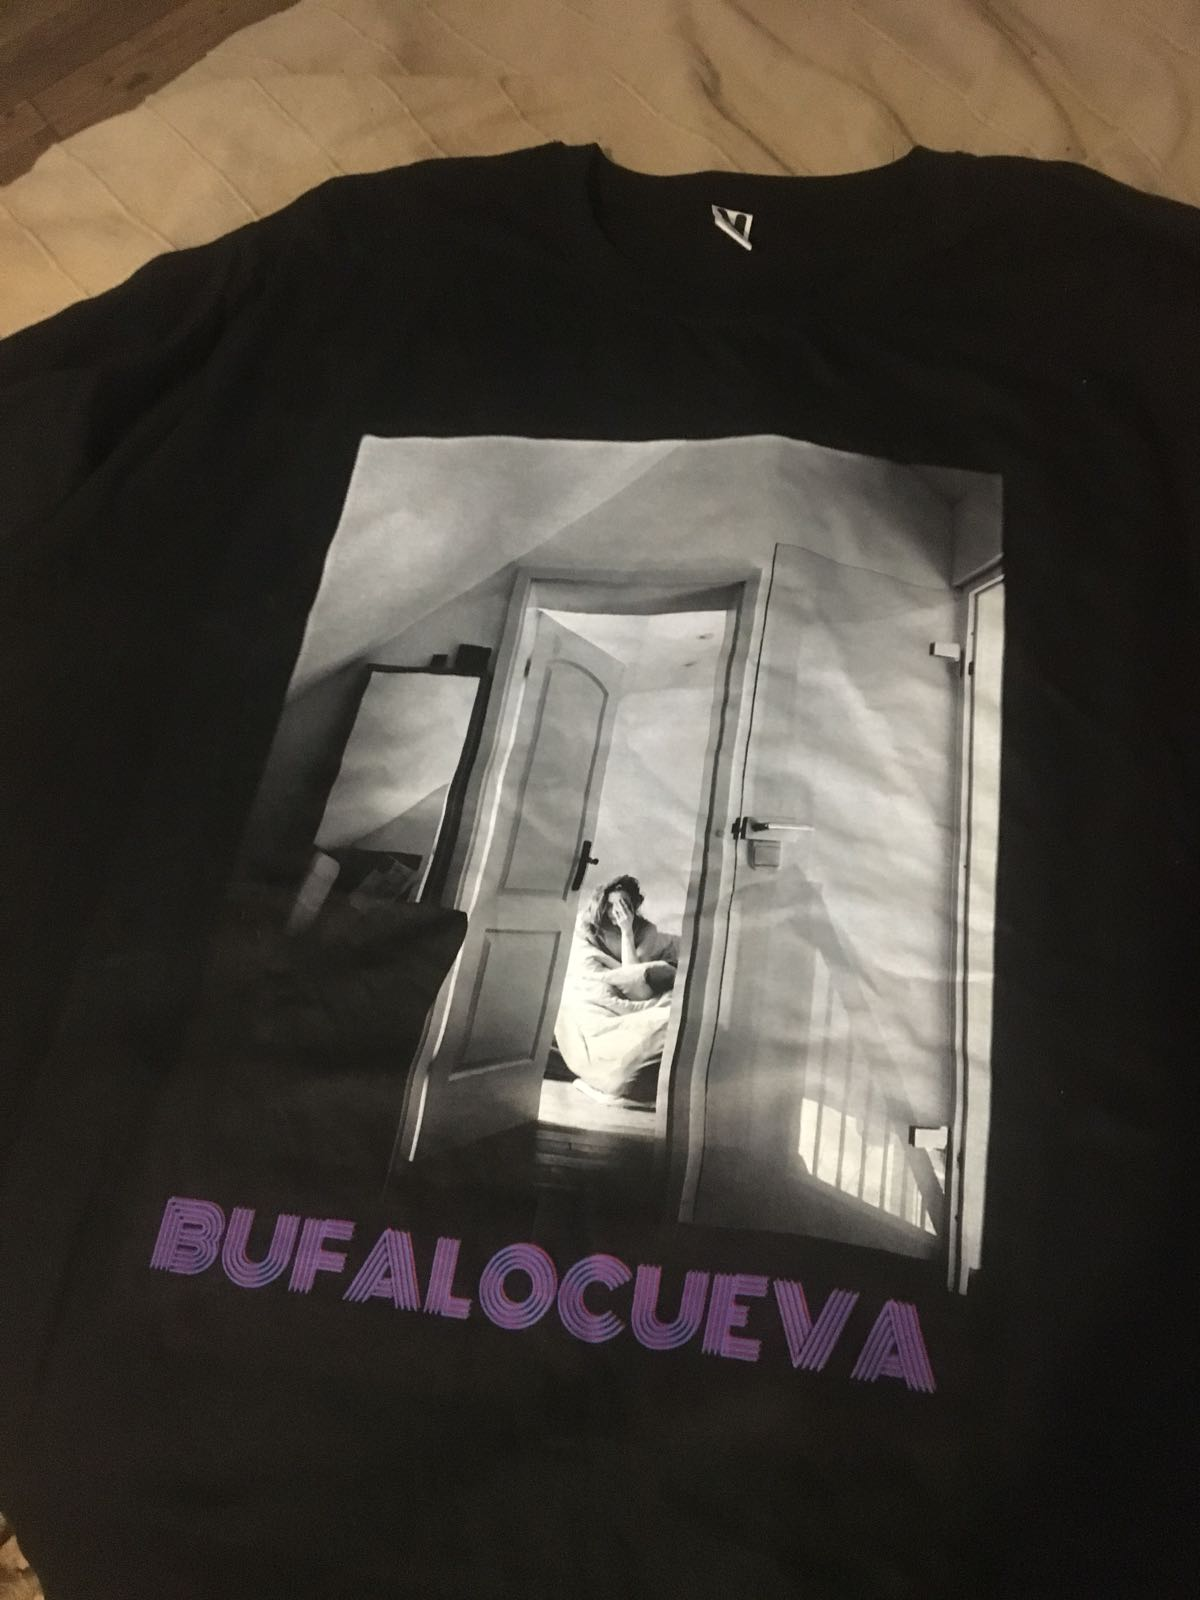 Camiseta exclusiva Búfalo Cueva